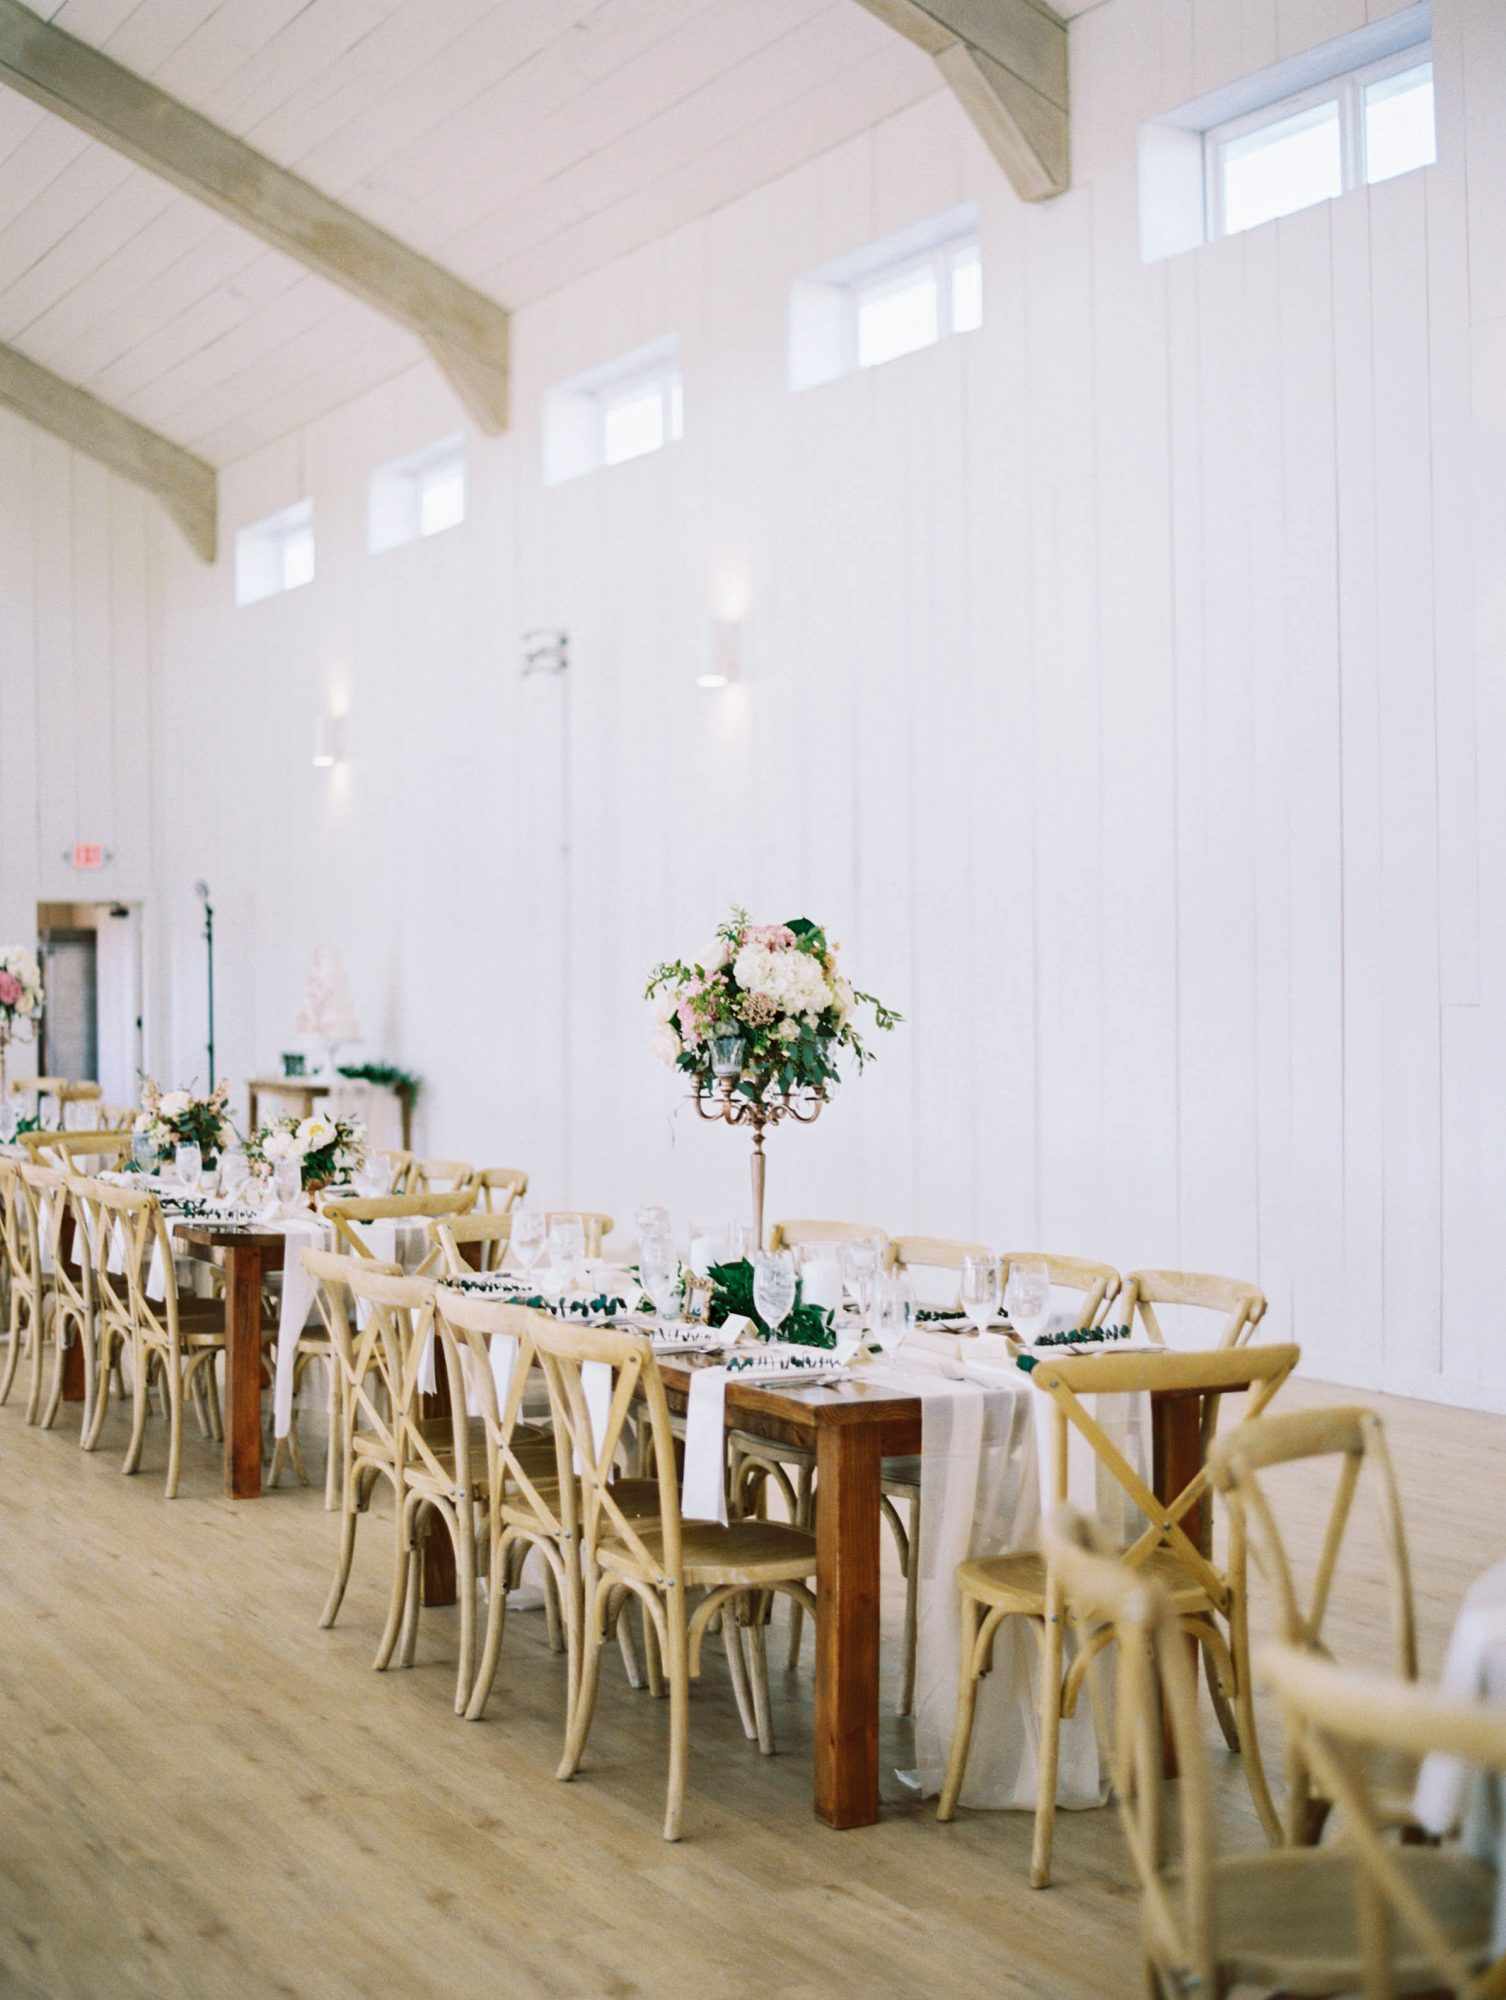 wedding reception tables with tall floral centerpiece